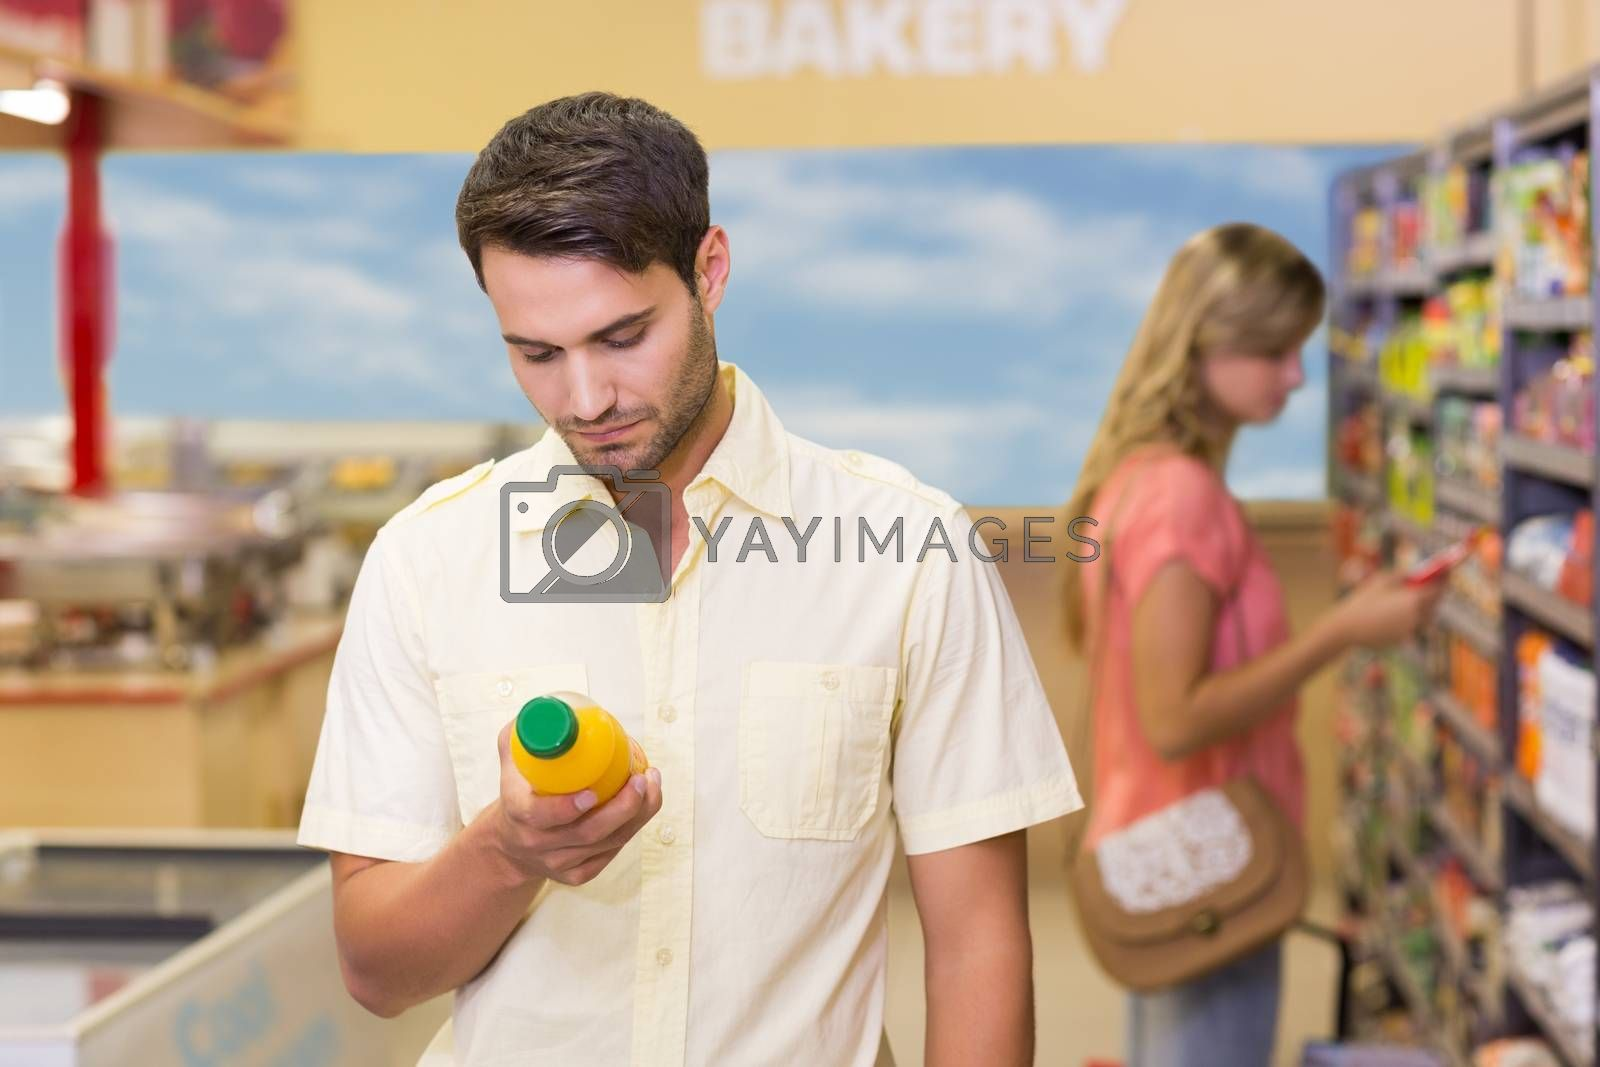 Royalty free image of A handsome man buying products  by Wavebreakmedia